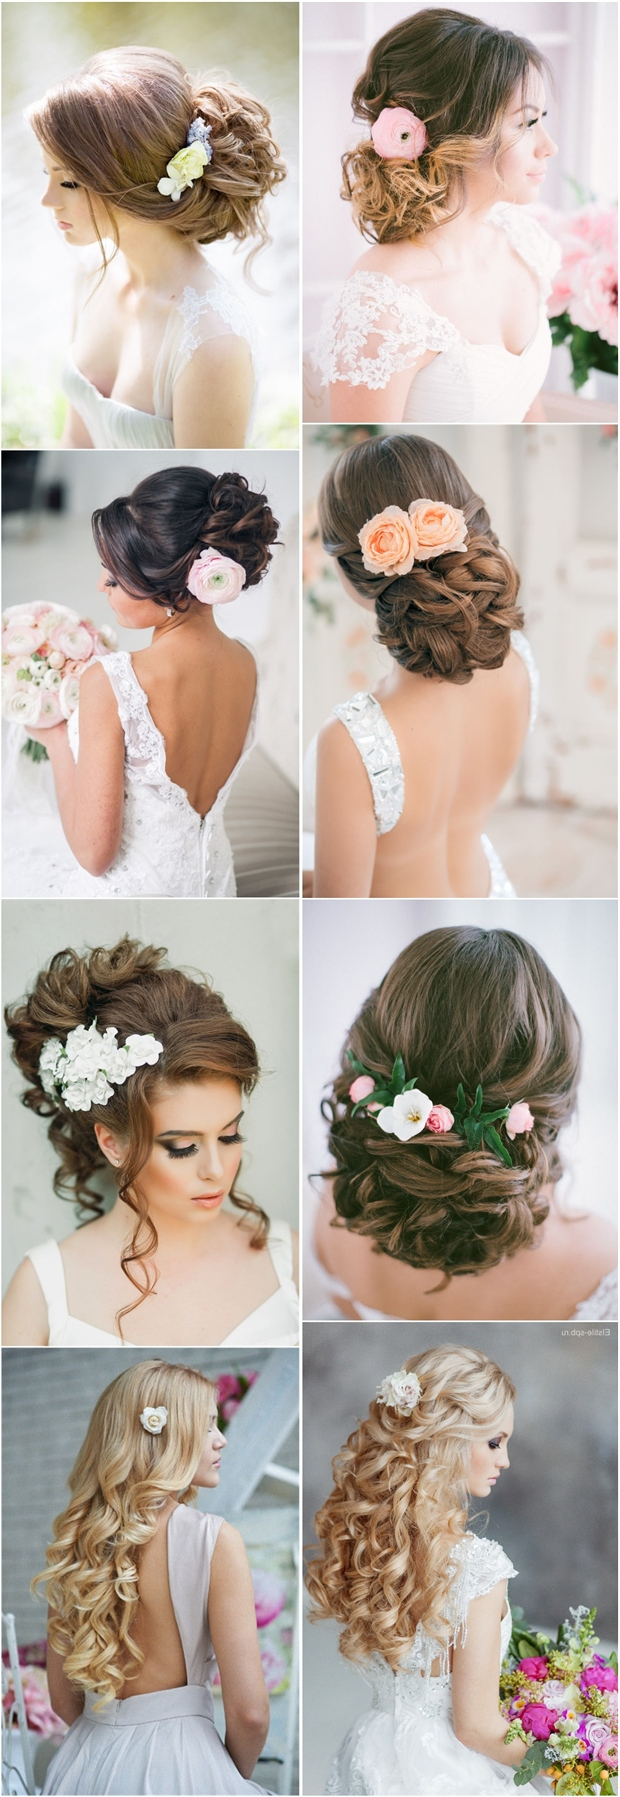 2019 Romantic Florals Updo Hairstyles Intended For 25 Romantic Long Wedding Hairstyles Using Flowers (View 3 of 20)